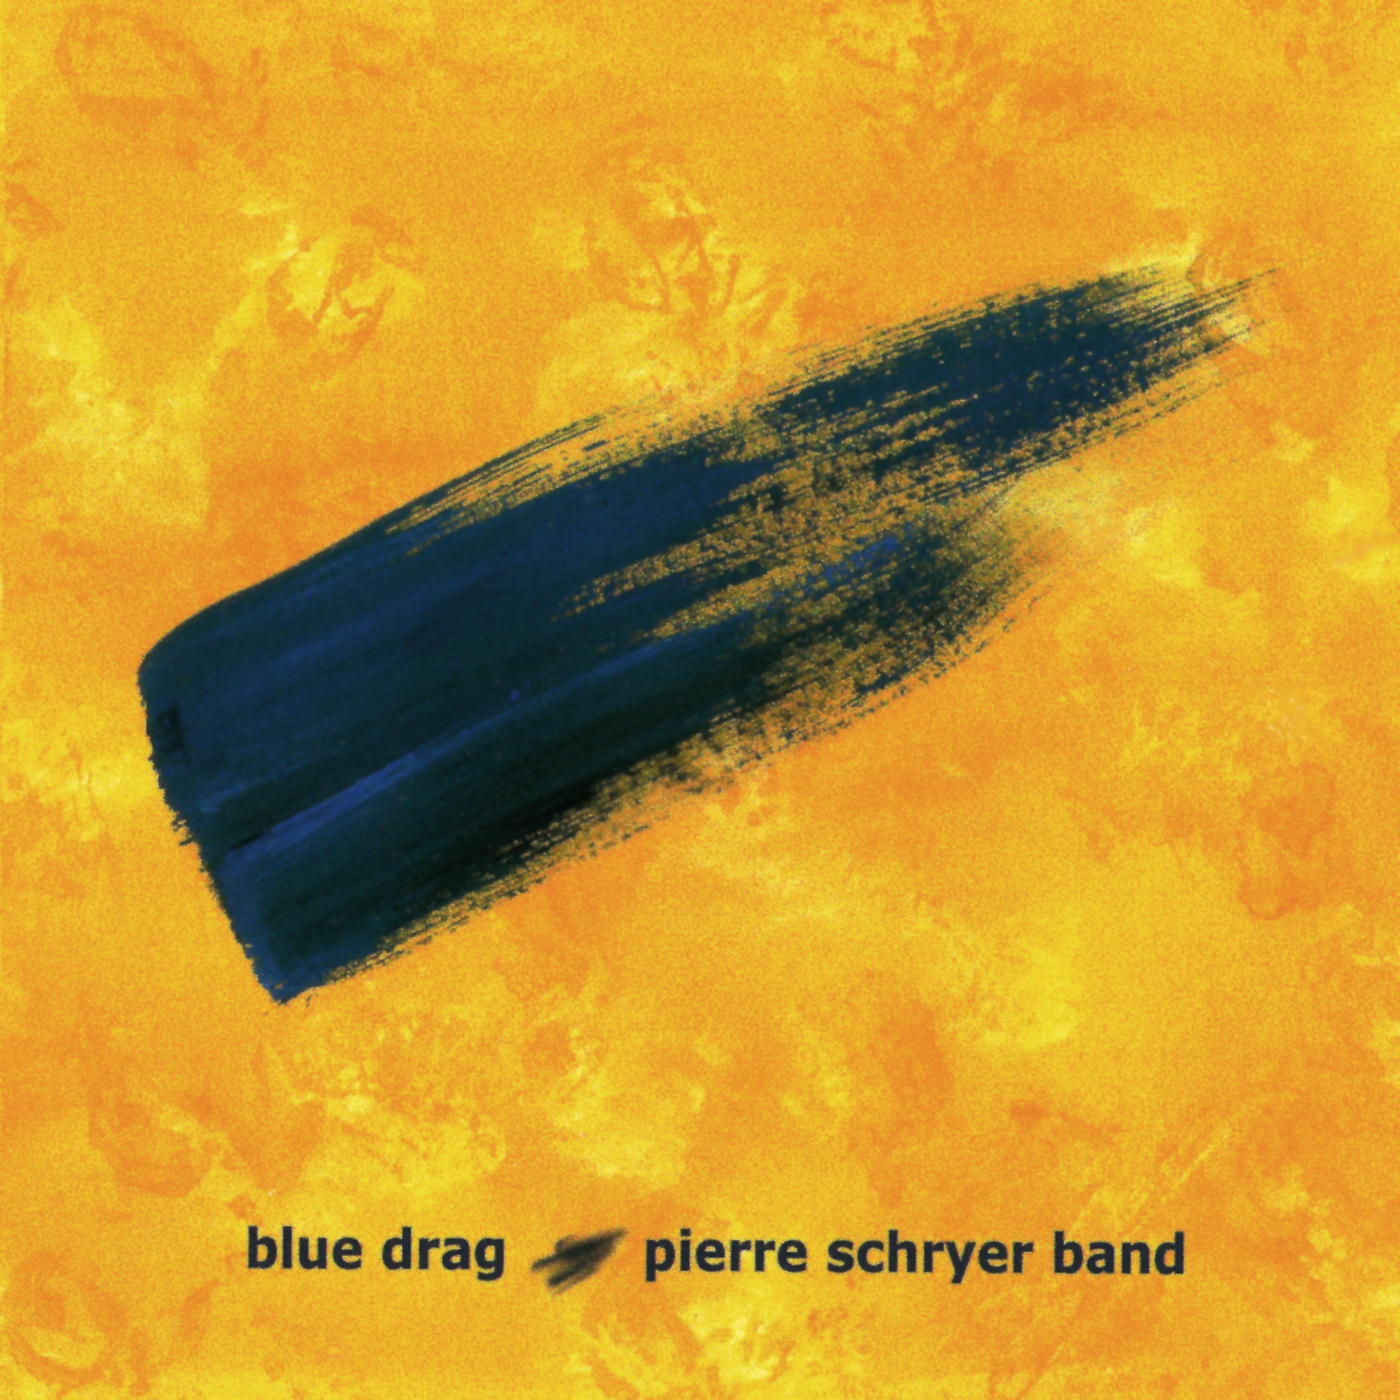 Blue Drag - Pierre Schryer Band